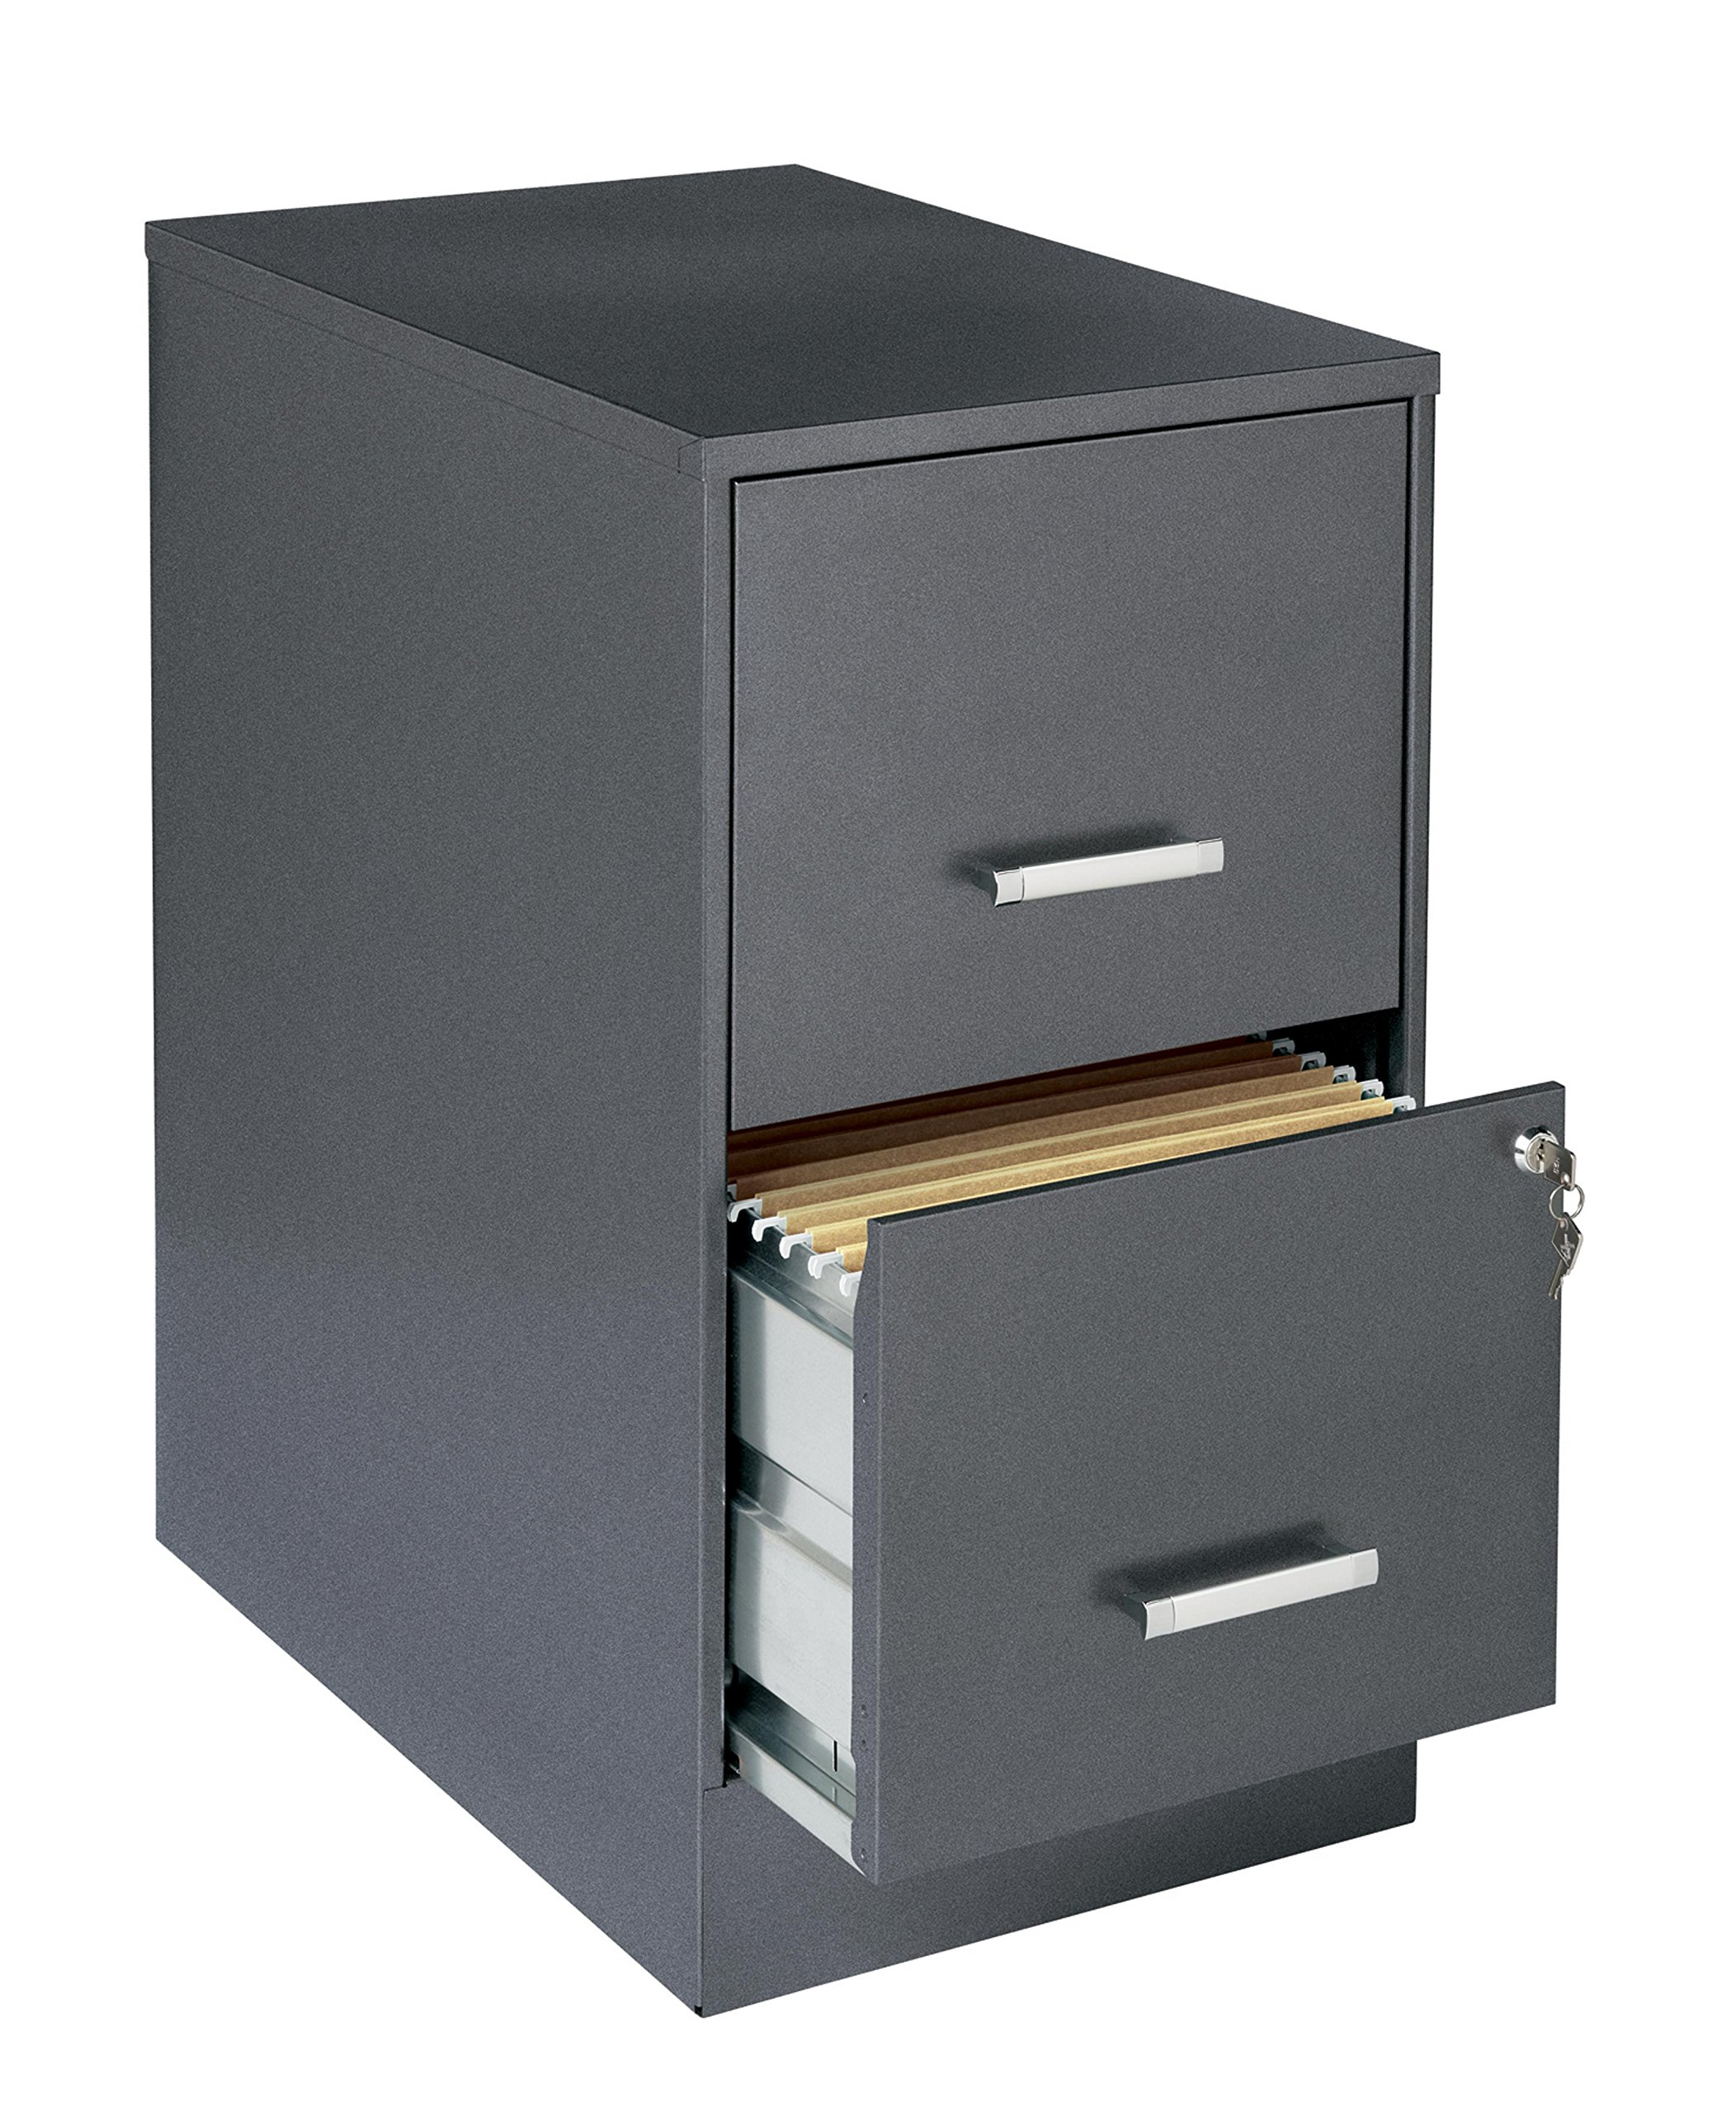 Office Designs Metallic Charcoal-colored 2-drawer Steel File Cabinet, Made From Steel For First Class Durability.